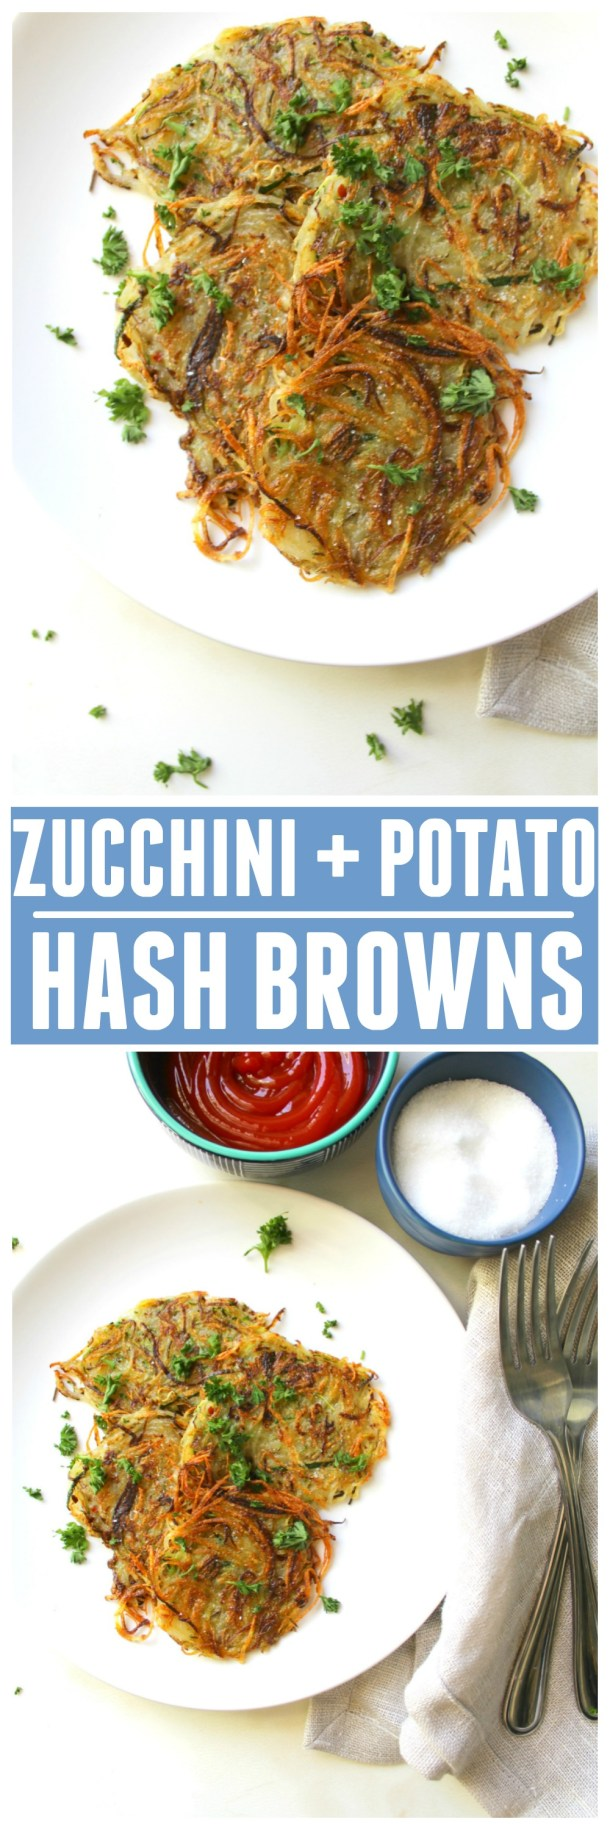 Make a breakfast classic a little healthier with these Zucchini Potato Hash Browns | ThisSavoryVegan.com